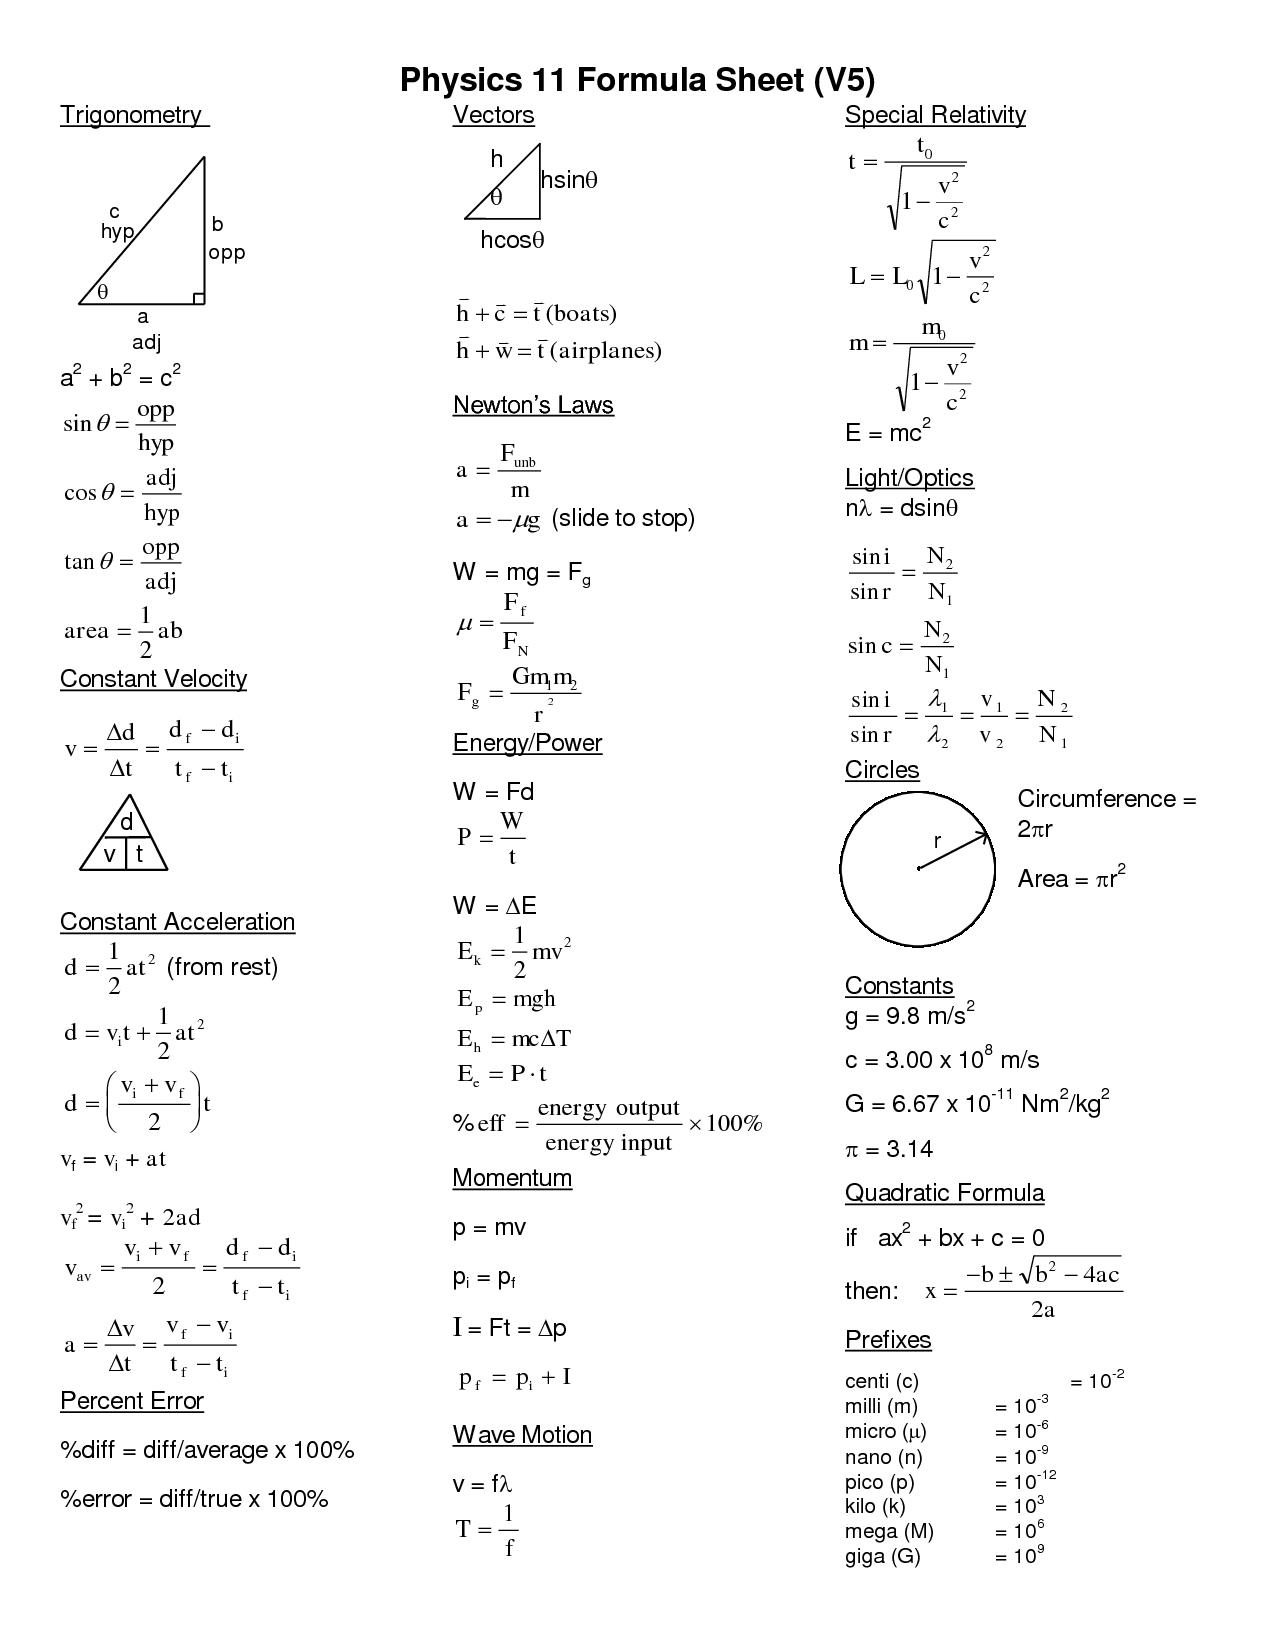 Physics Equations Sheet High School